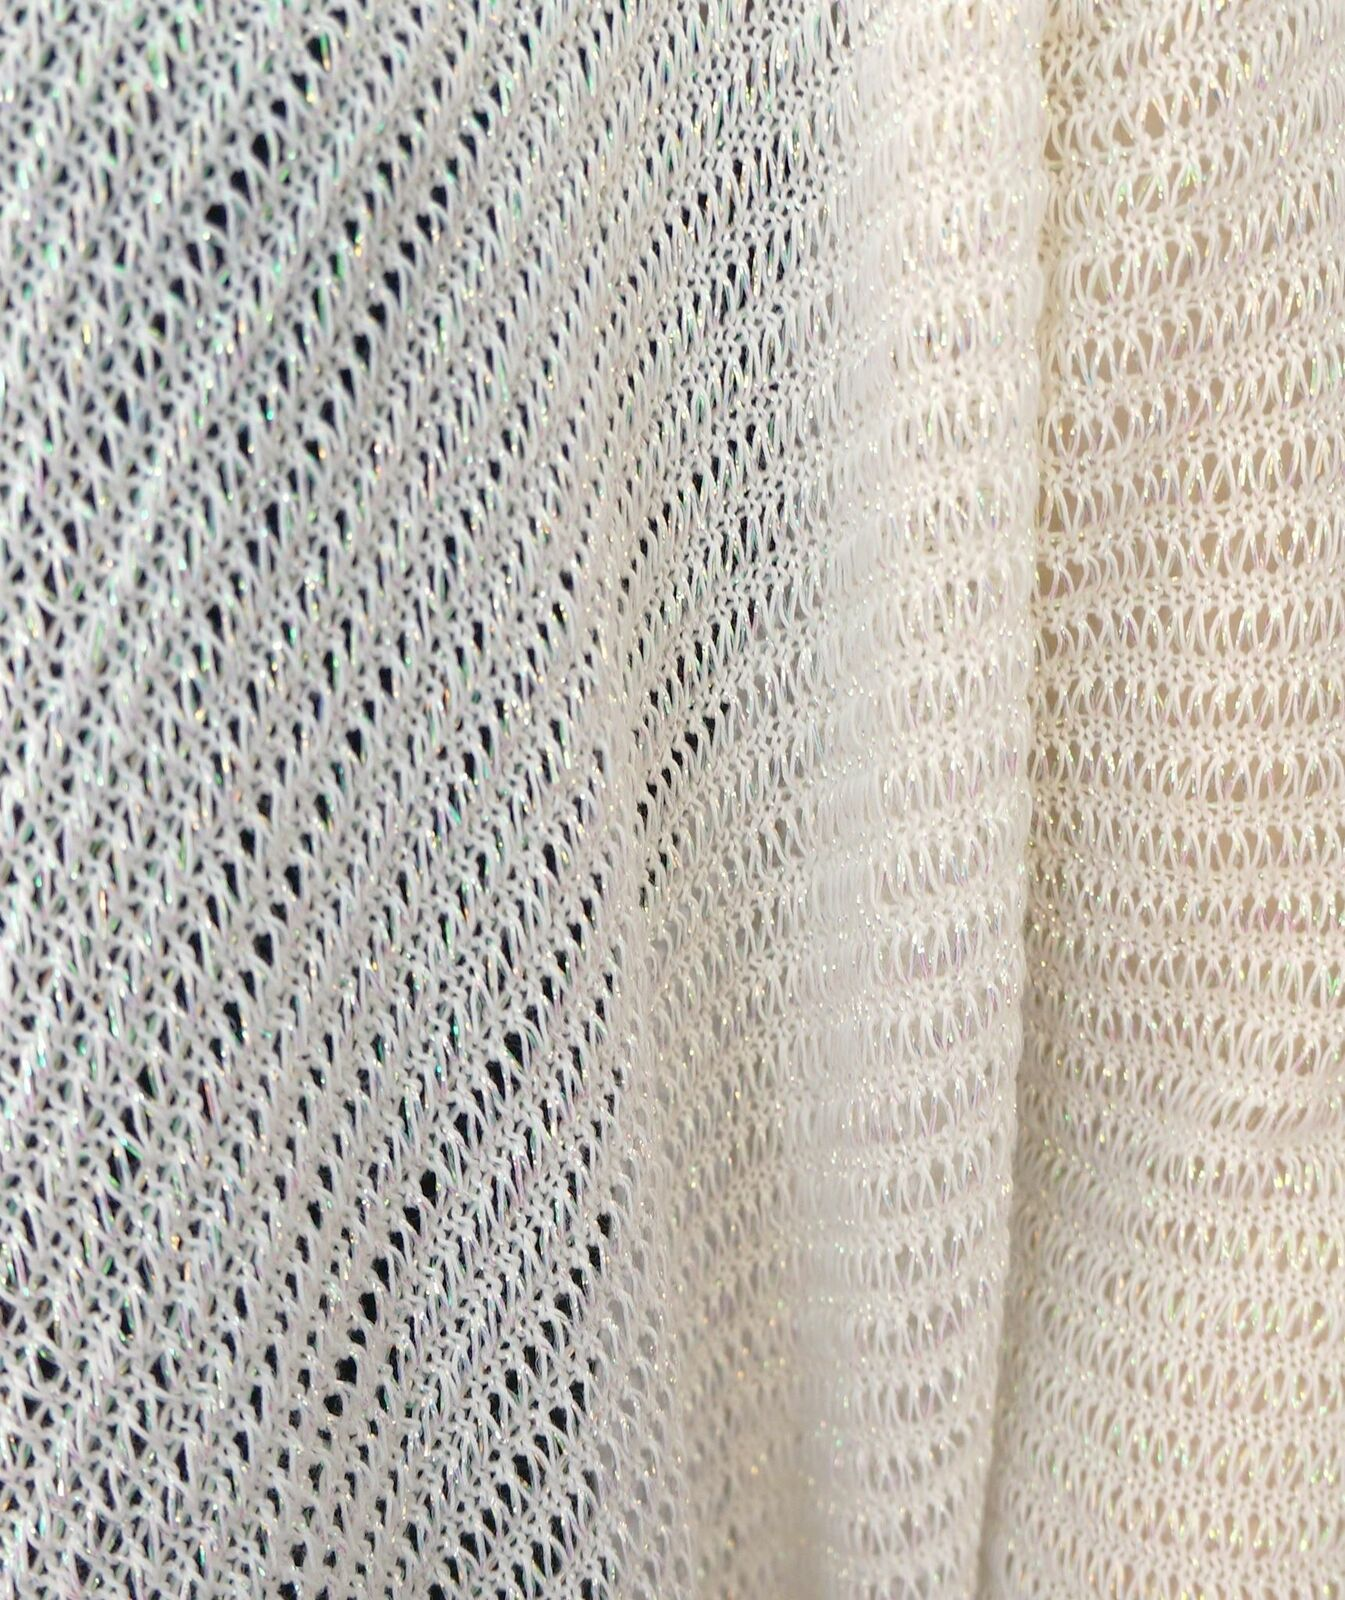 DKNY Open Weave Iridescent Ivory PS Cotton Blend Draped Cardigan PS Ivory a648c7